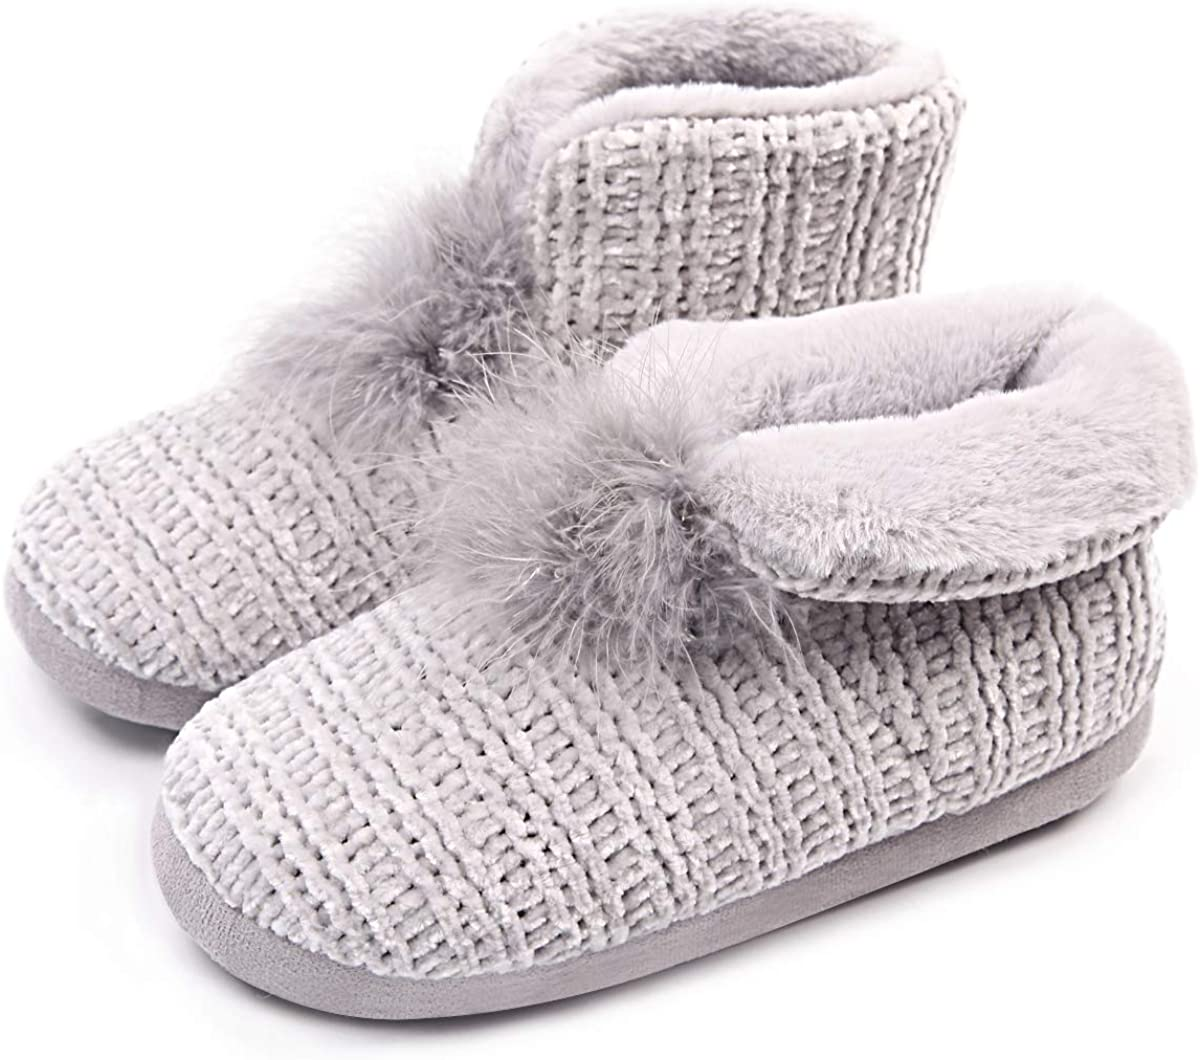 Caramella Bubble Womens Comfort Knit Slippers Bootie Warm Memory Foam House Booty Indoor Outdoor